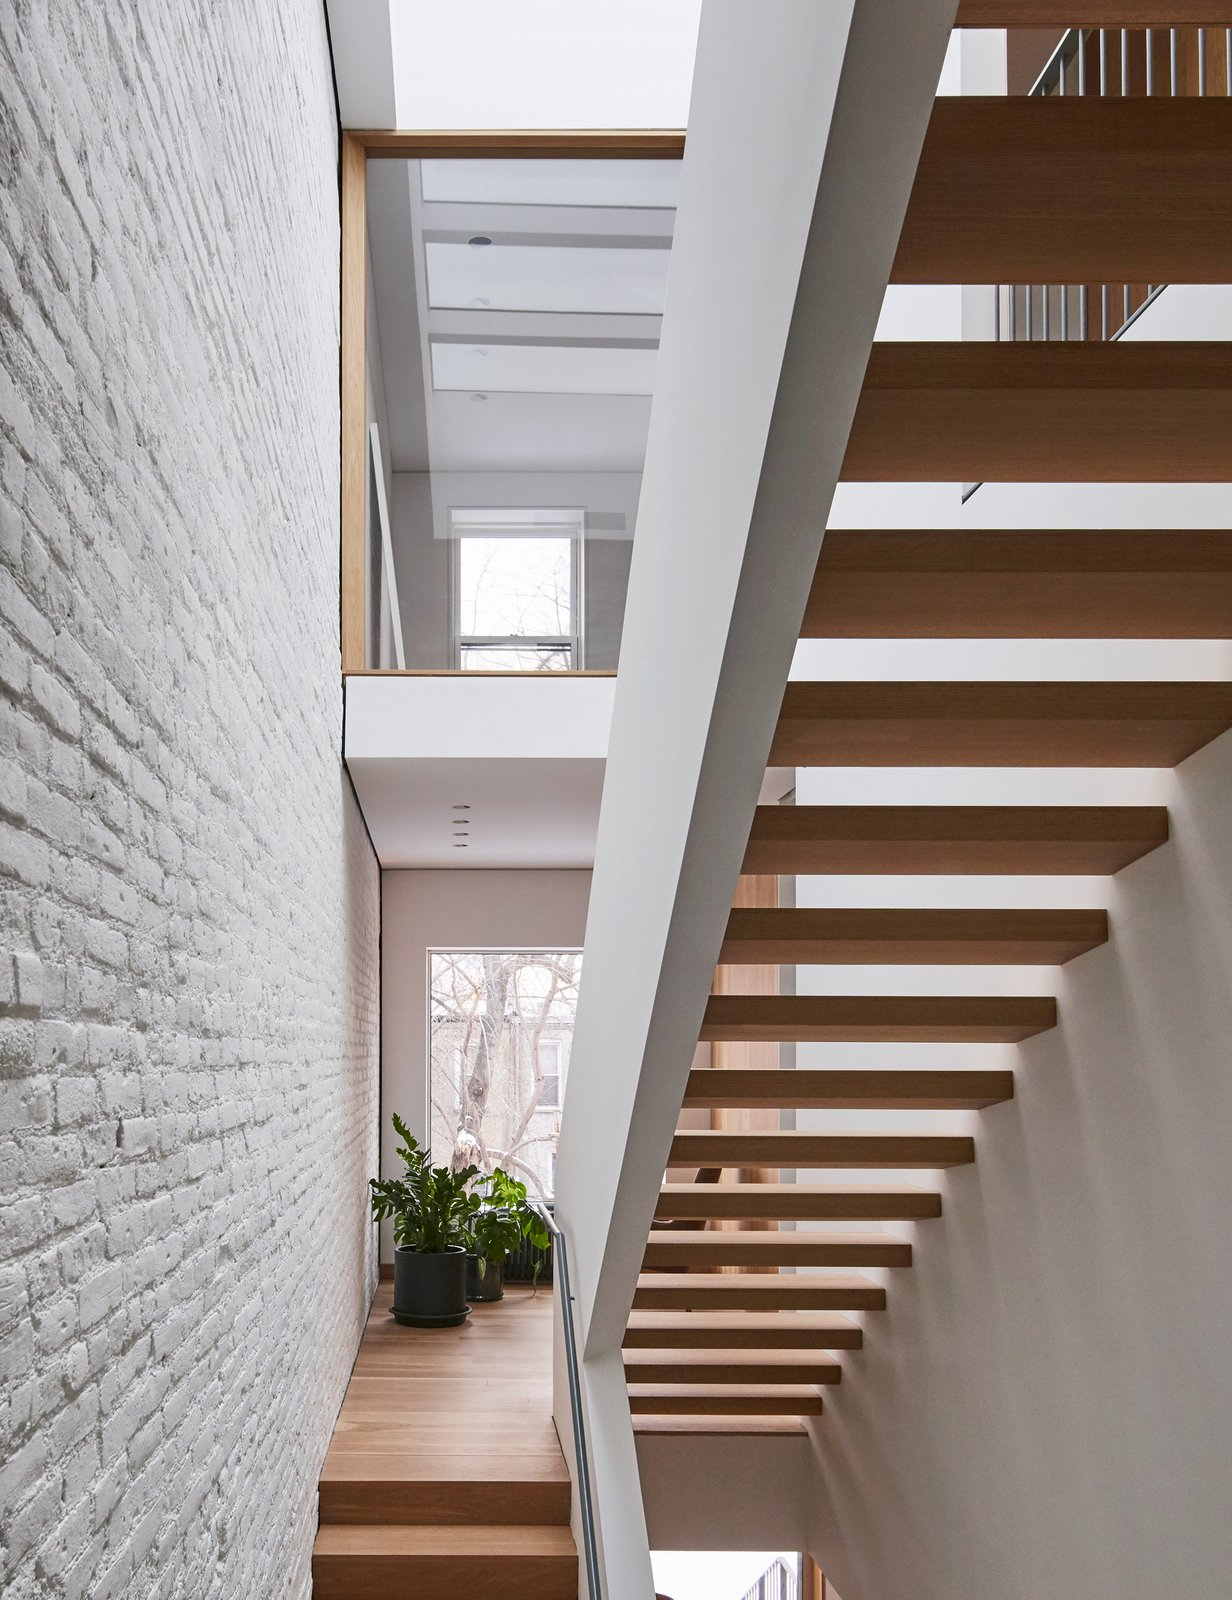 Before & After: An Architect Takes Steps to Create His Dream Home in Brooklyn